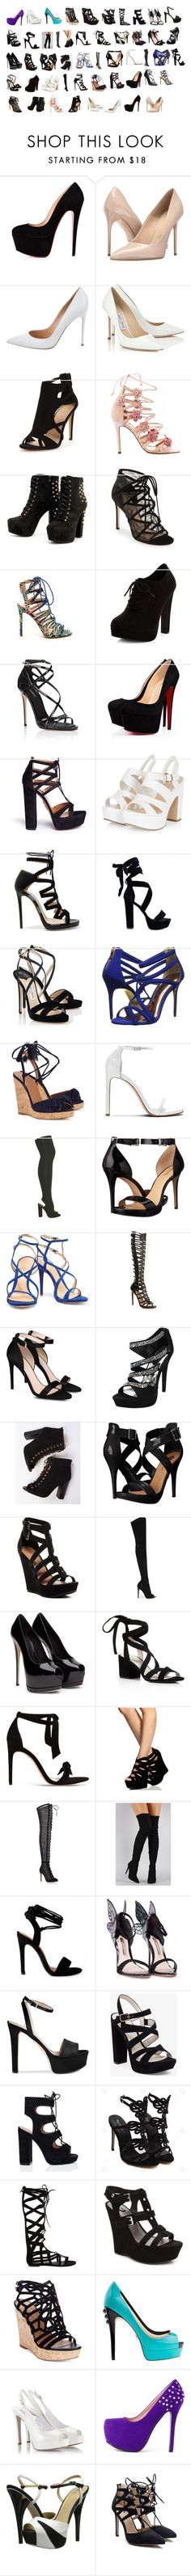 """""""Heels Shopping"""" by musicmythicangel ❤ liked on Polyvore featuring Massimo Matteo, Gianvito Rossi, Jimmy Choo, Marchesa, Pour La Victoire, New Look, Dolce&Gabbana, Aquazzura, Ted Baker and adidas Originals"""